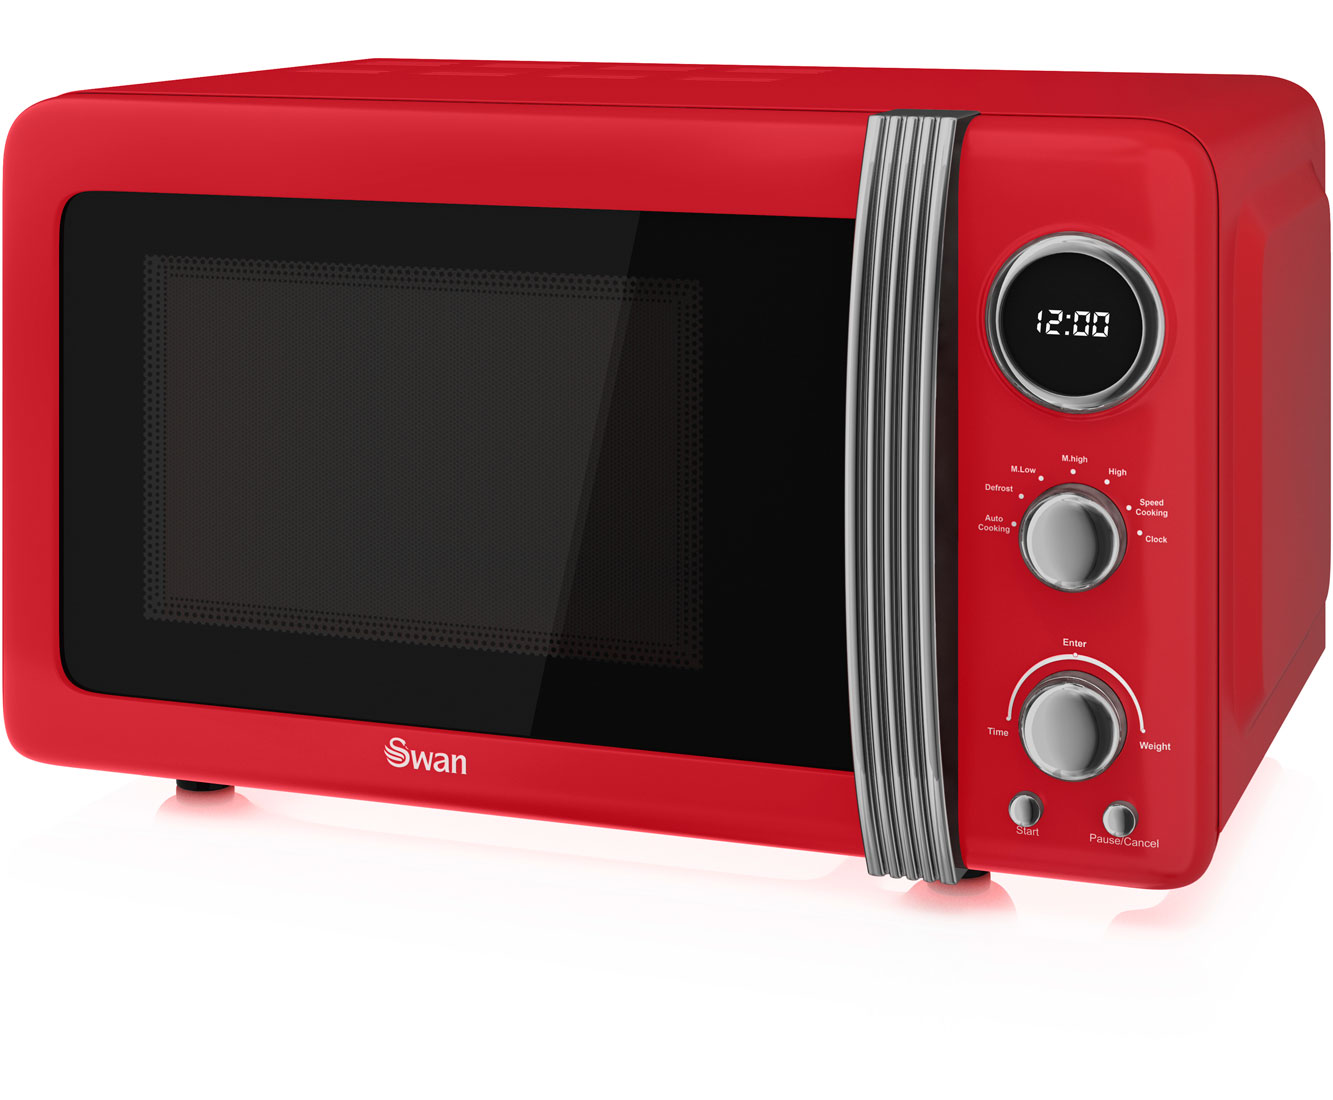 Sentinel Swan Retro Sm22030rn 800w 20l Microwave Oven Lcd Display